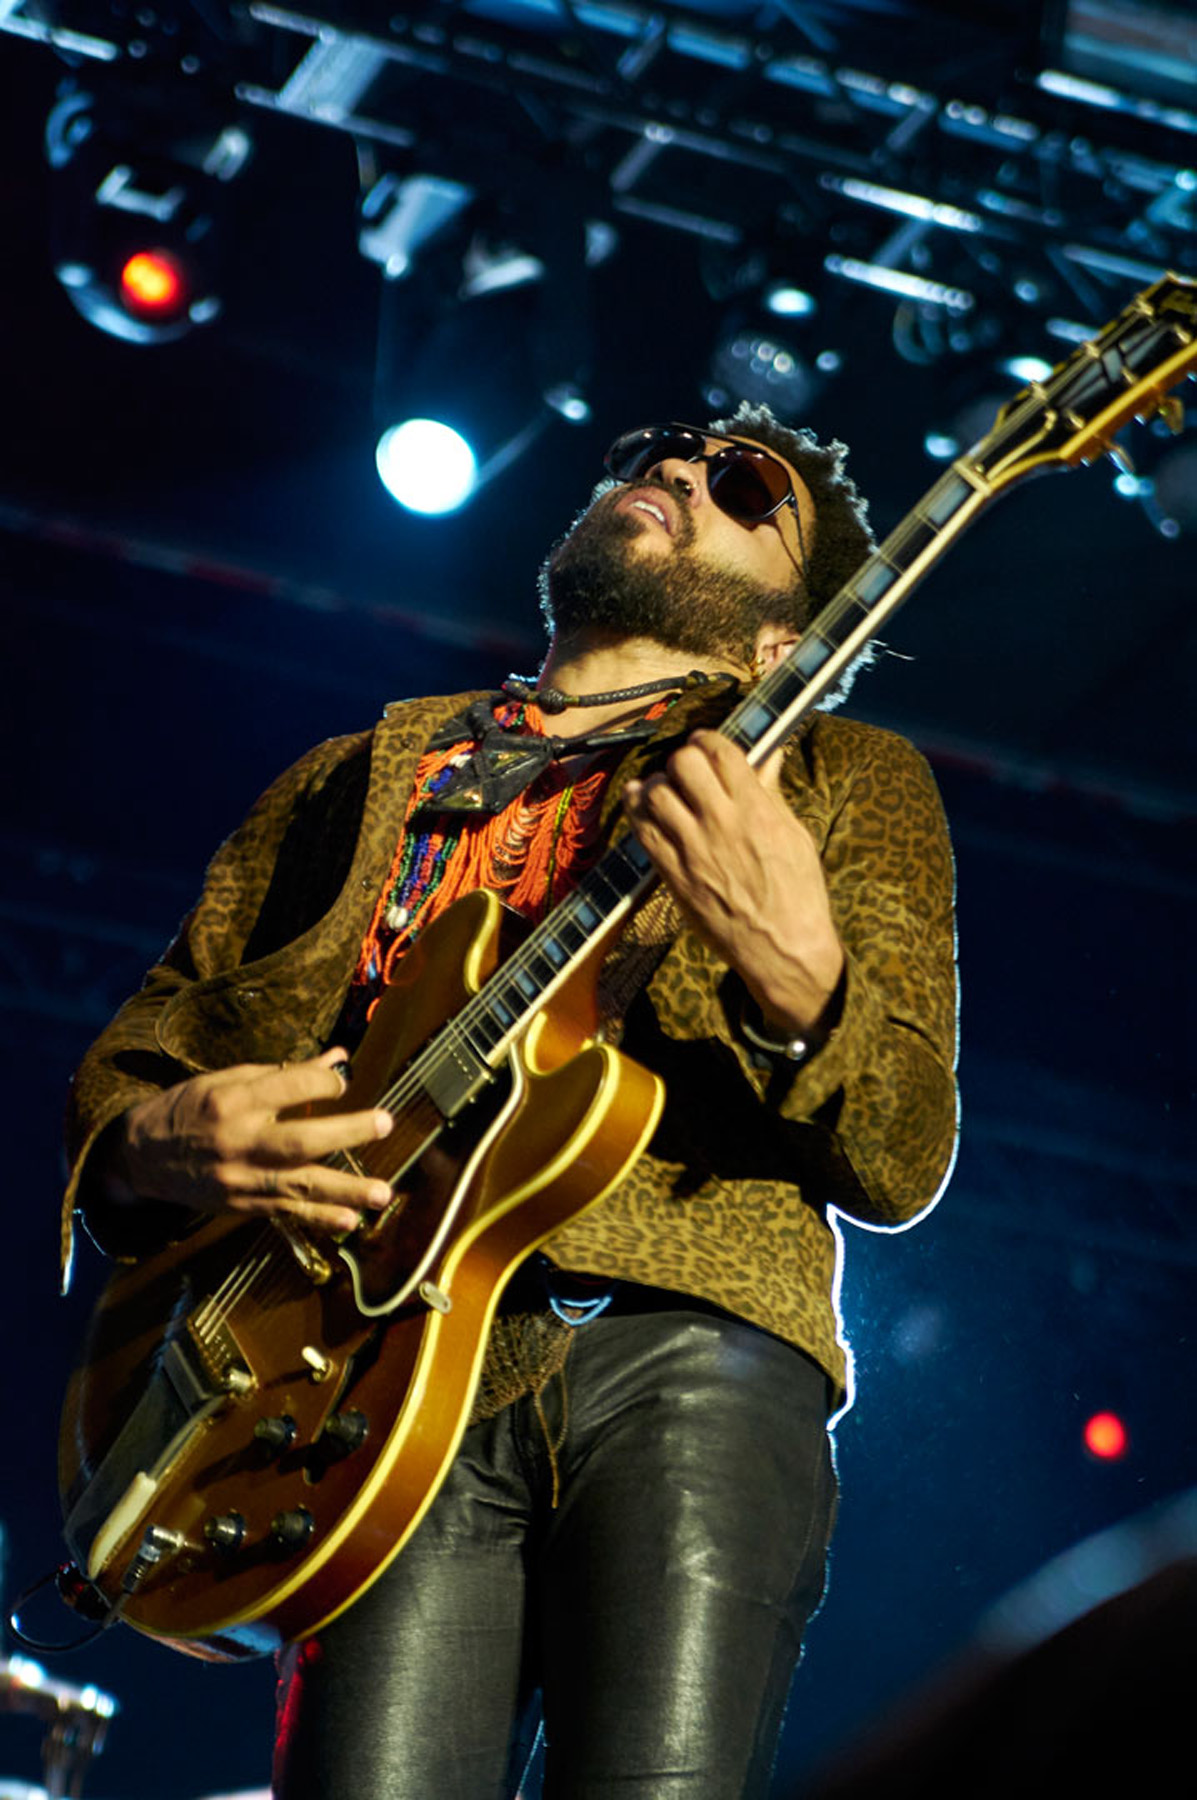 lenny-kravitz-afro-punk-mirza-babic-photo-7.jpg